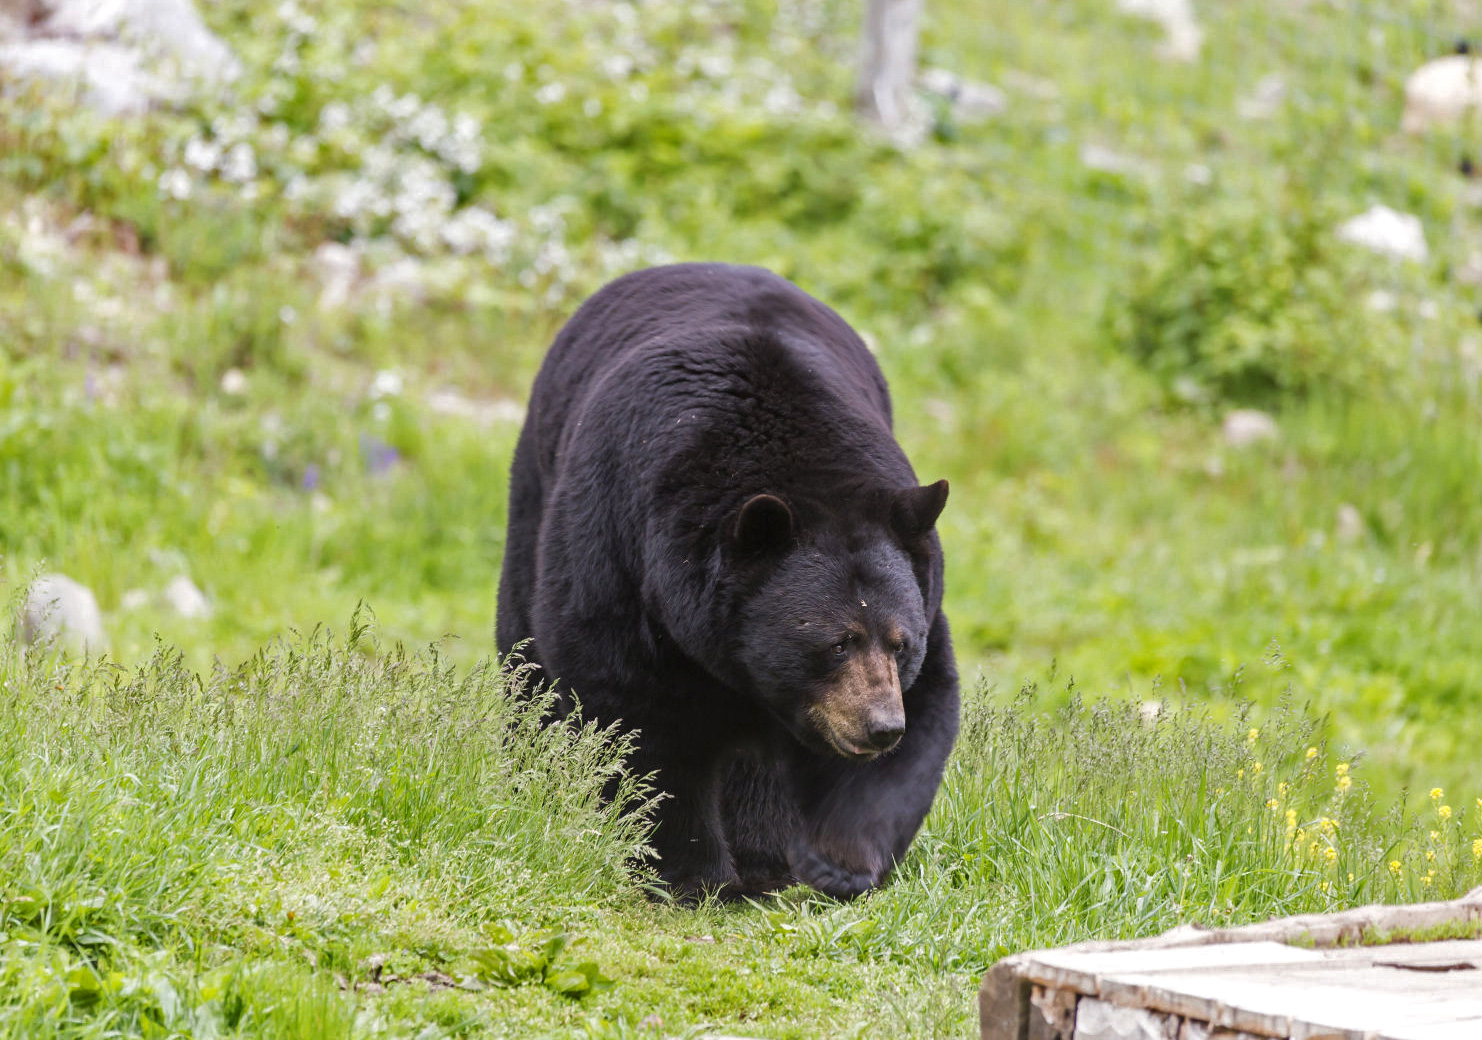 Indiana's first black bear in over 140 years spotted in the wild